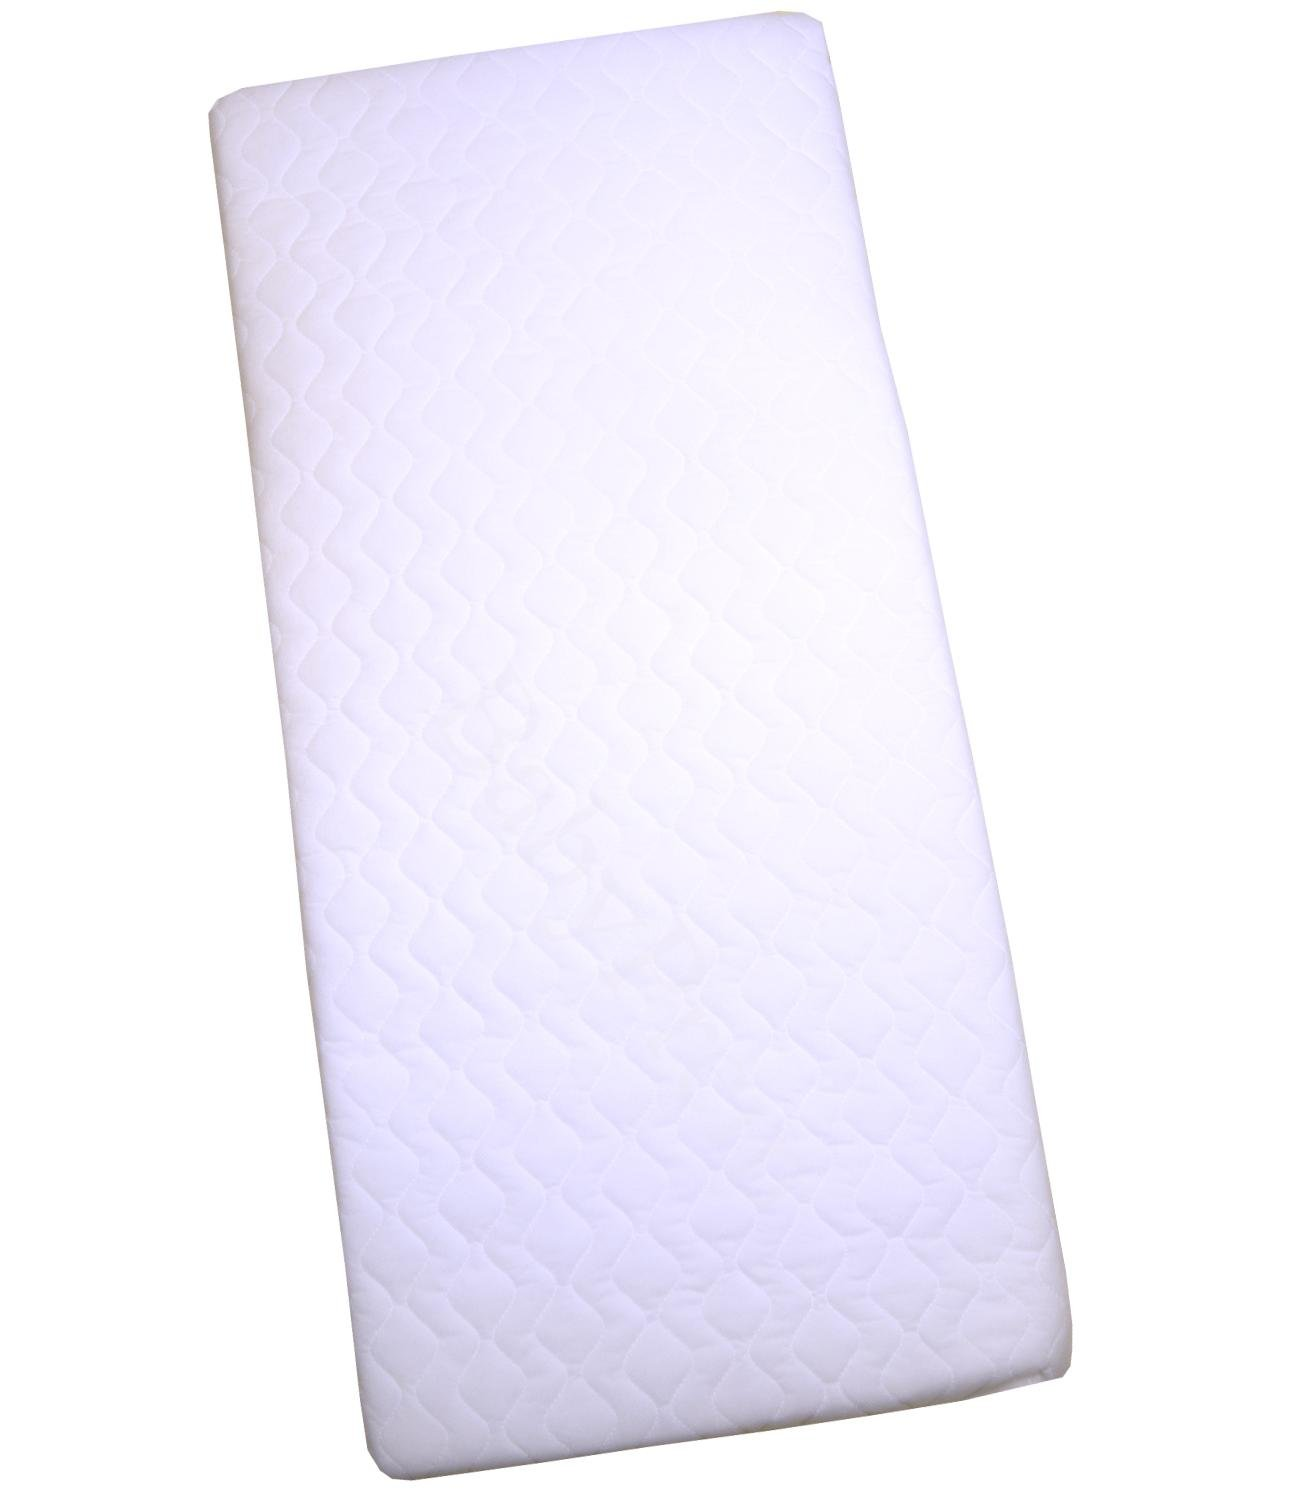 BabyPrem Cradle Mattress 35 x 16 x 1.5 Inches Quilted by BabyPrem